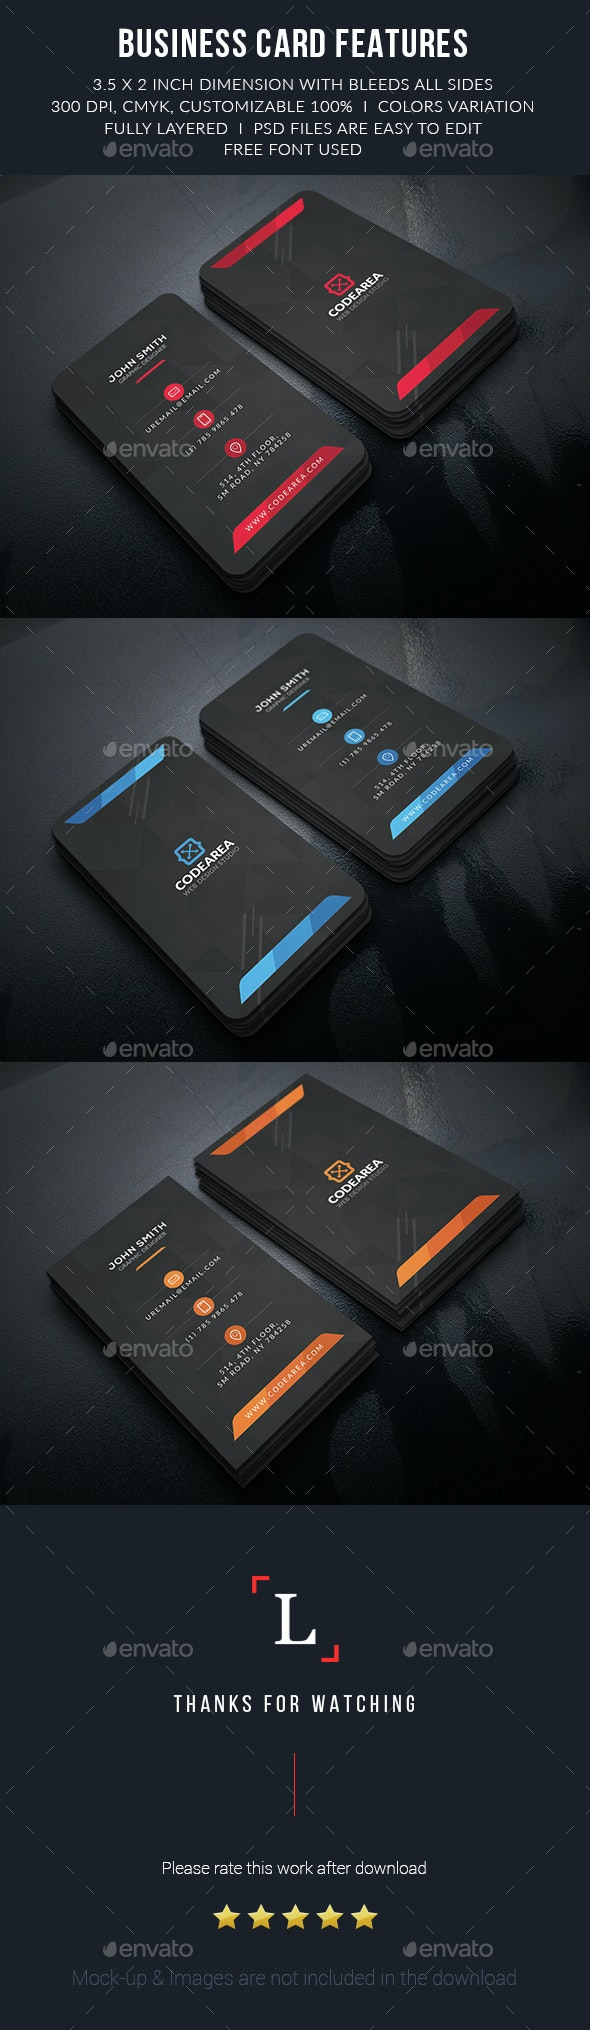 Black Creative Business Card - Business Cards Print Templates